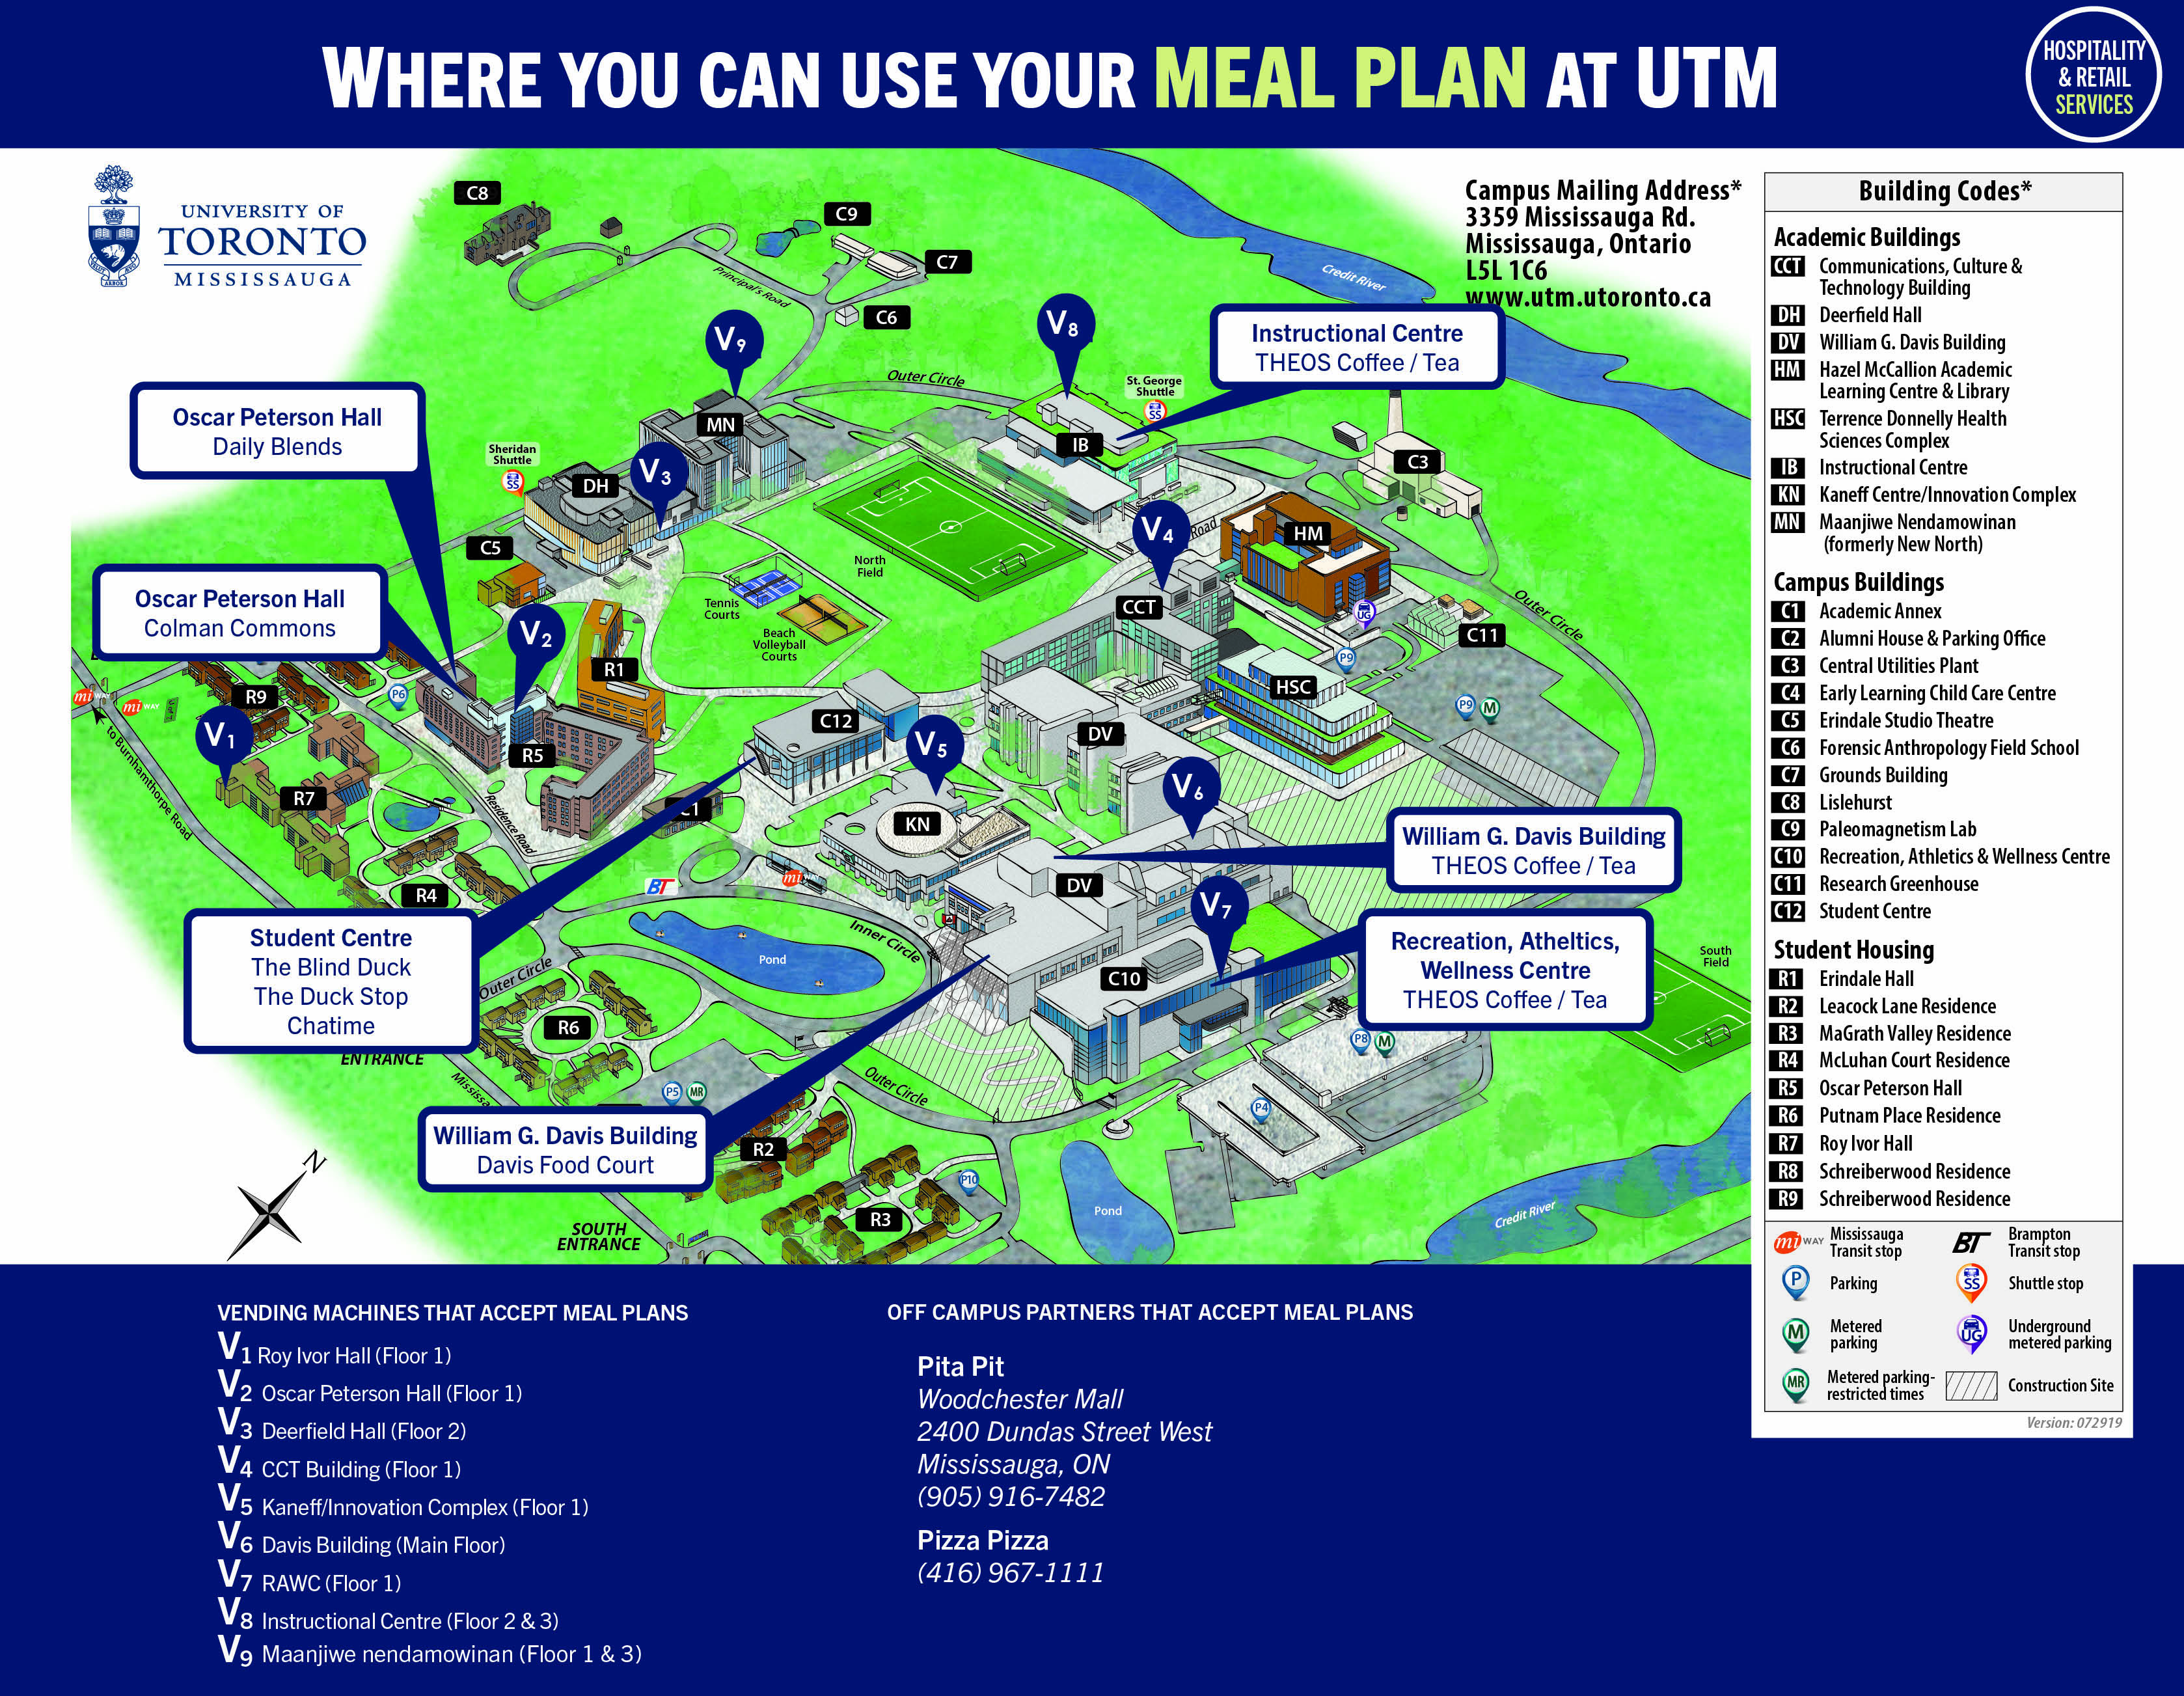 Meal Plan Food Service Locations